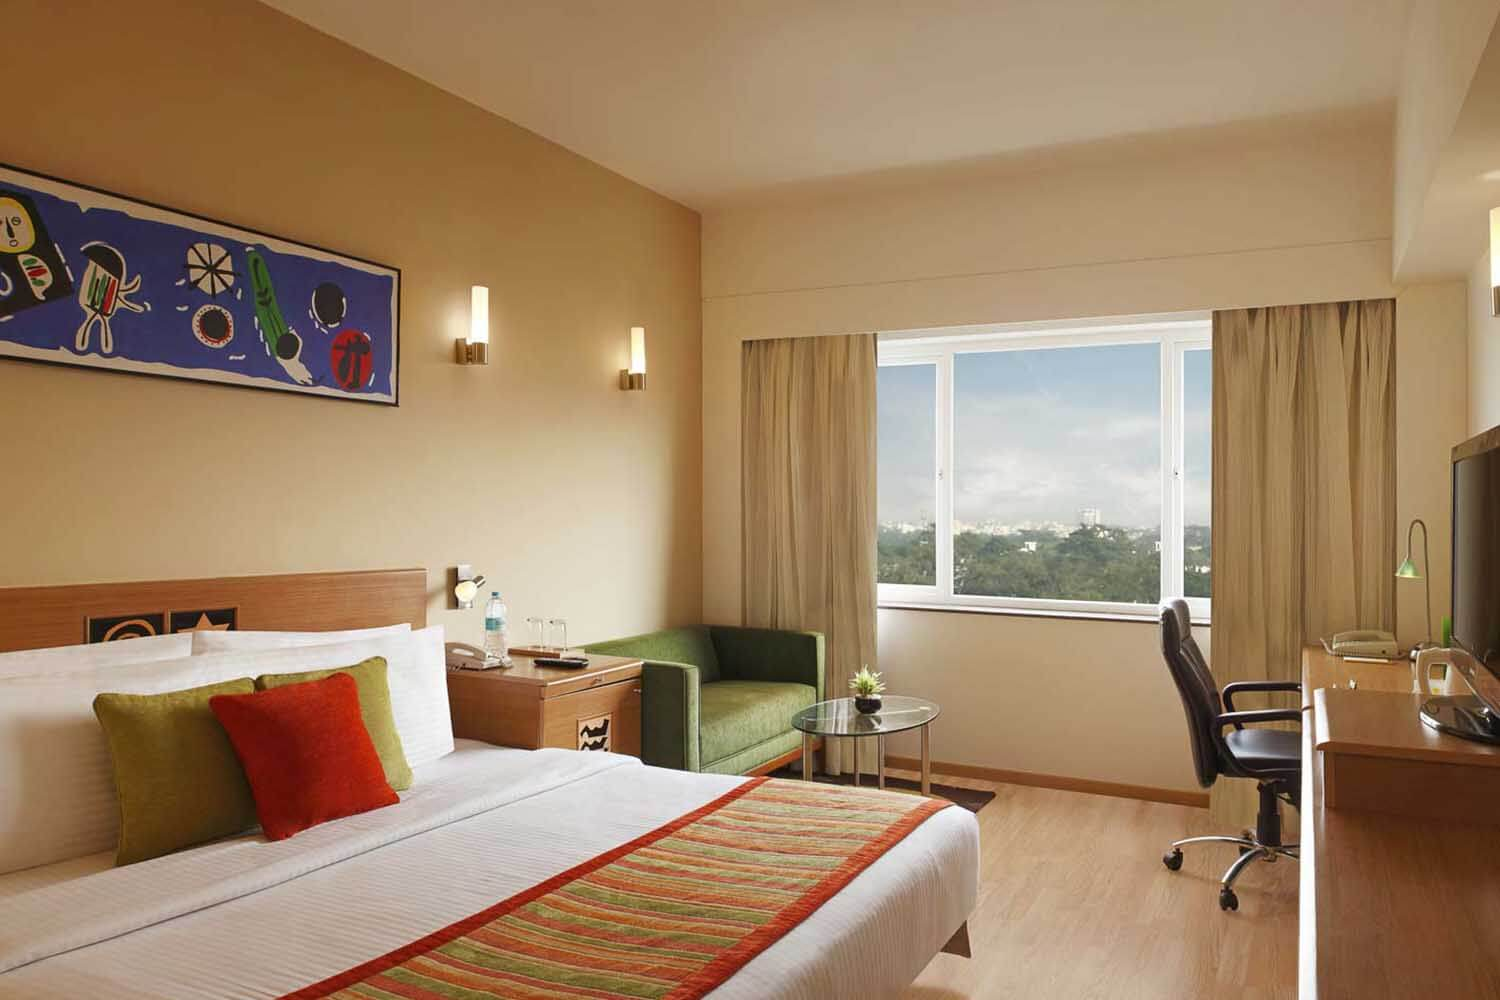 Hotel Green Lemon Luxury Rooms Suites In East Delhi Lemon Tree Hotel East Delhi